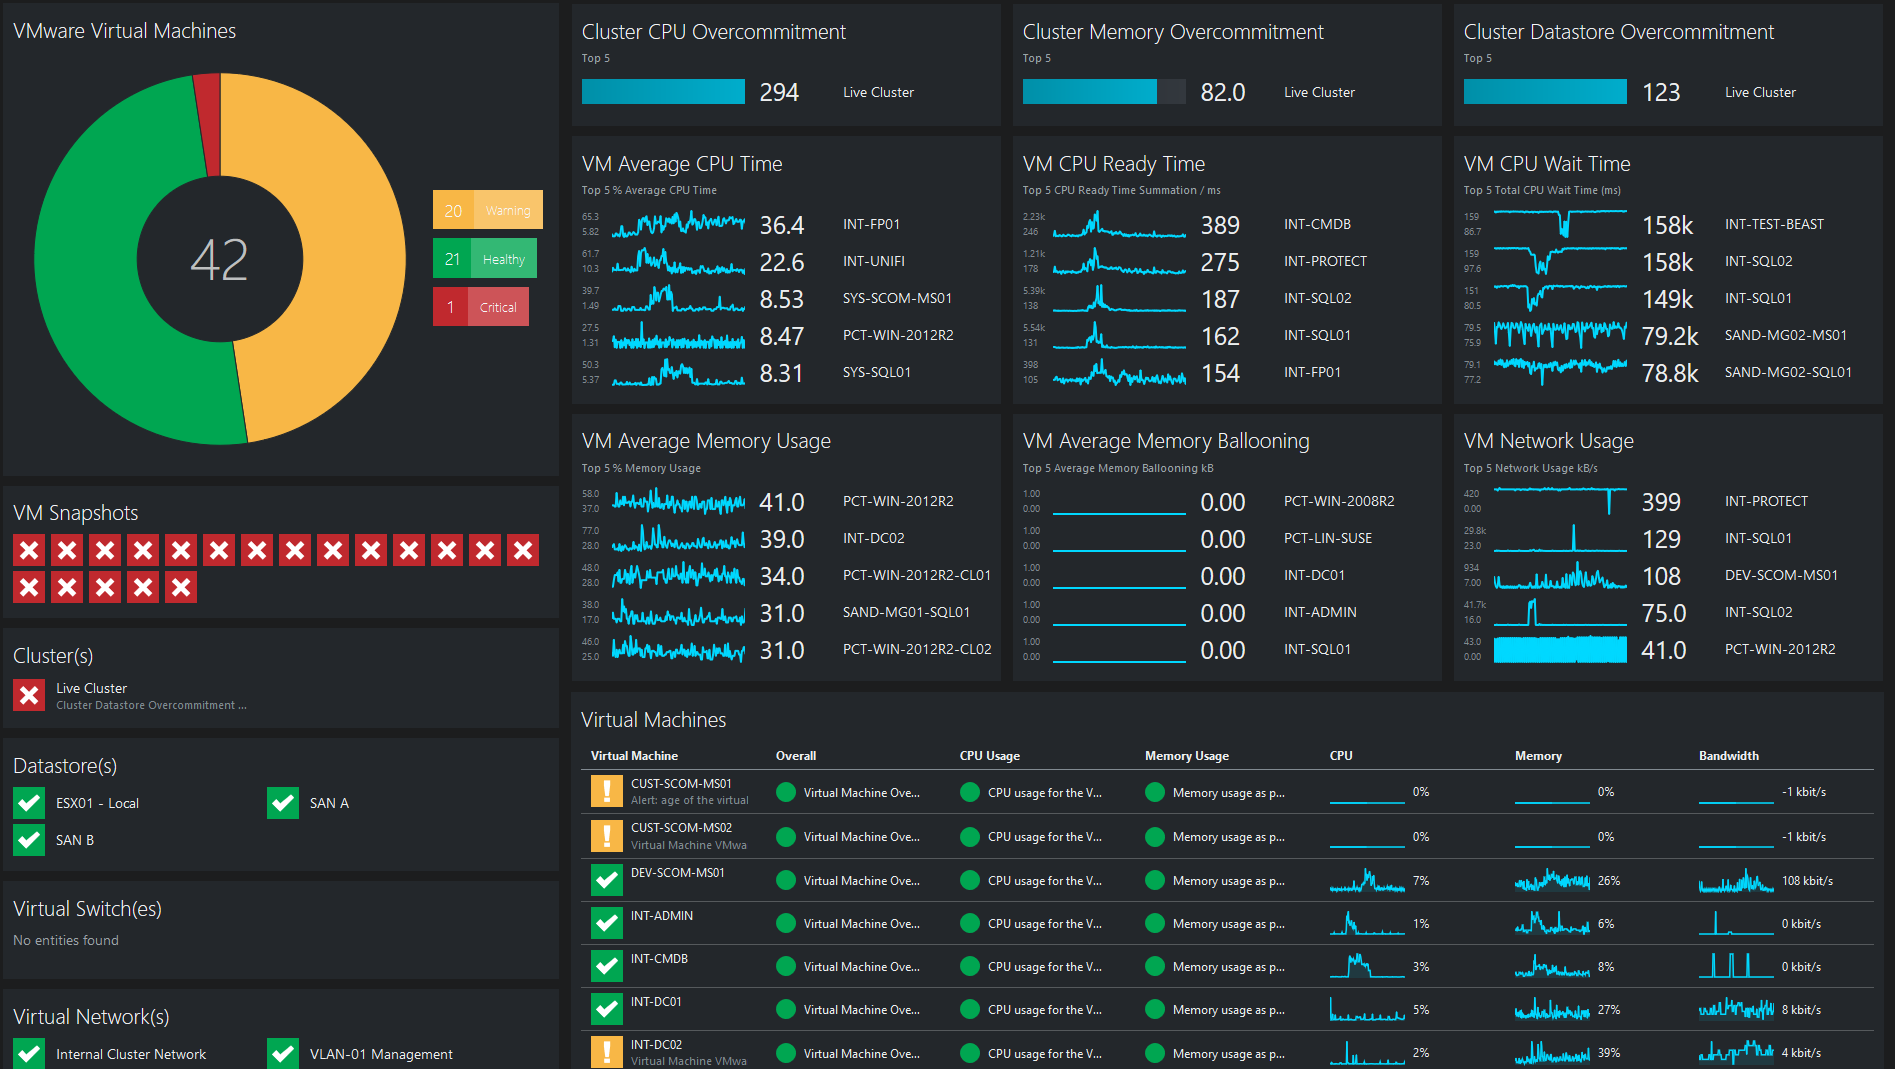 OpsLogix VMware Community Dashboard for SquaredUp